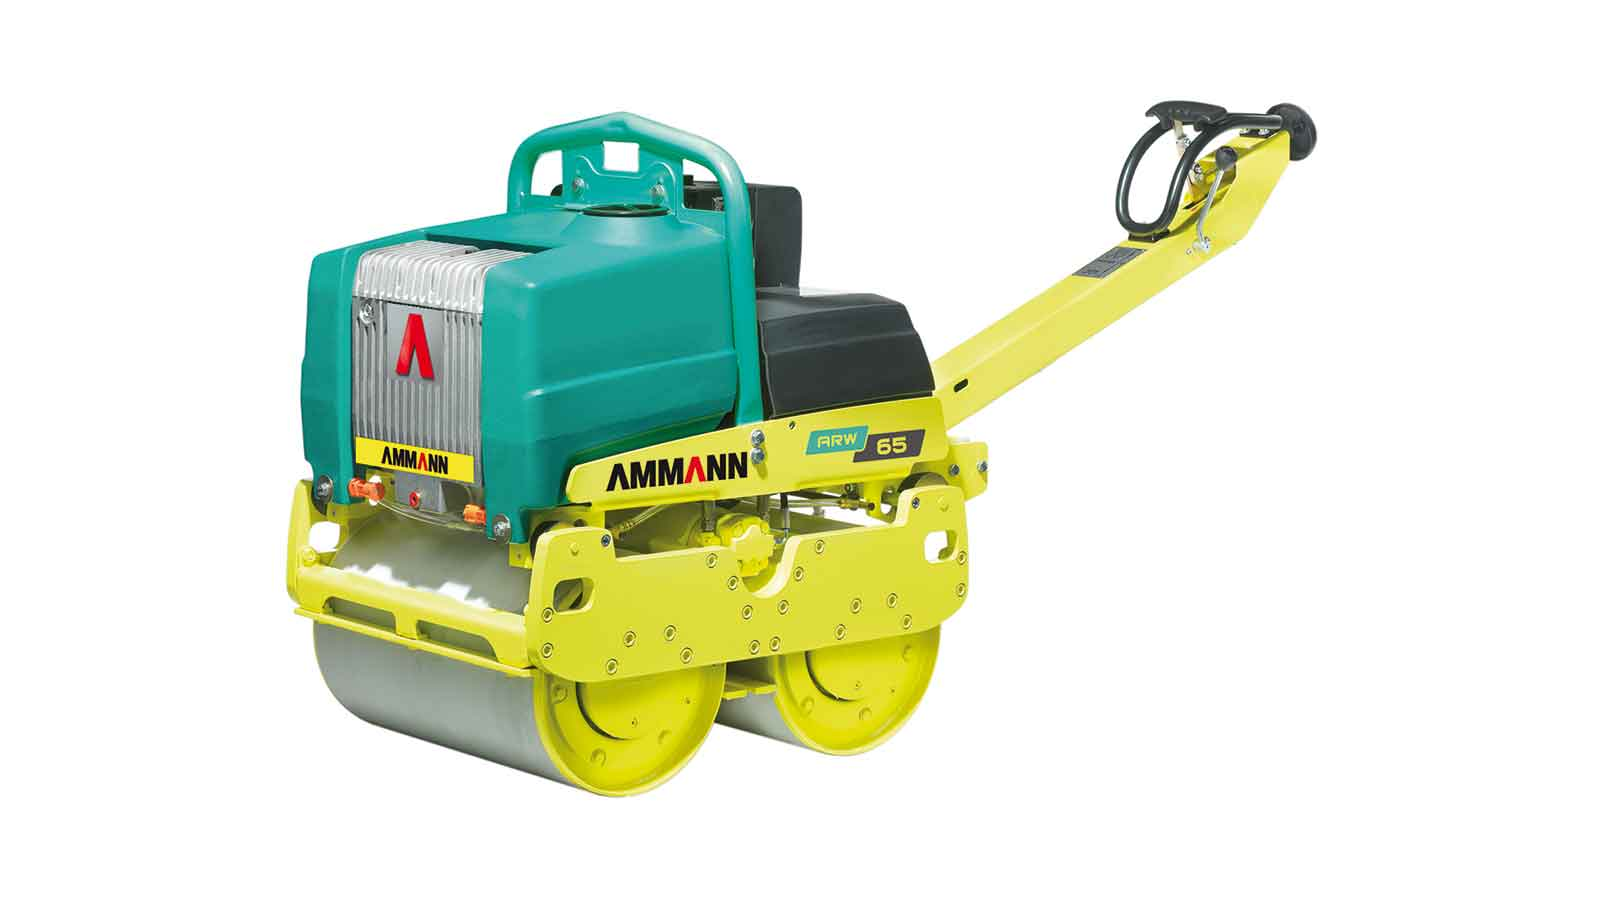 ARW 65 WITH YANMAR DIESEL ENGINE